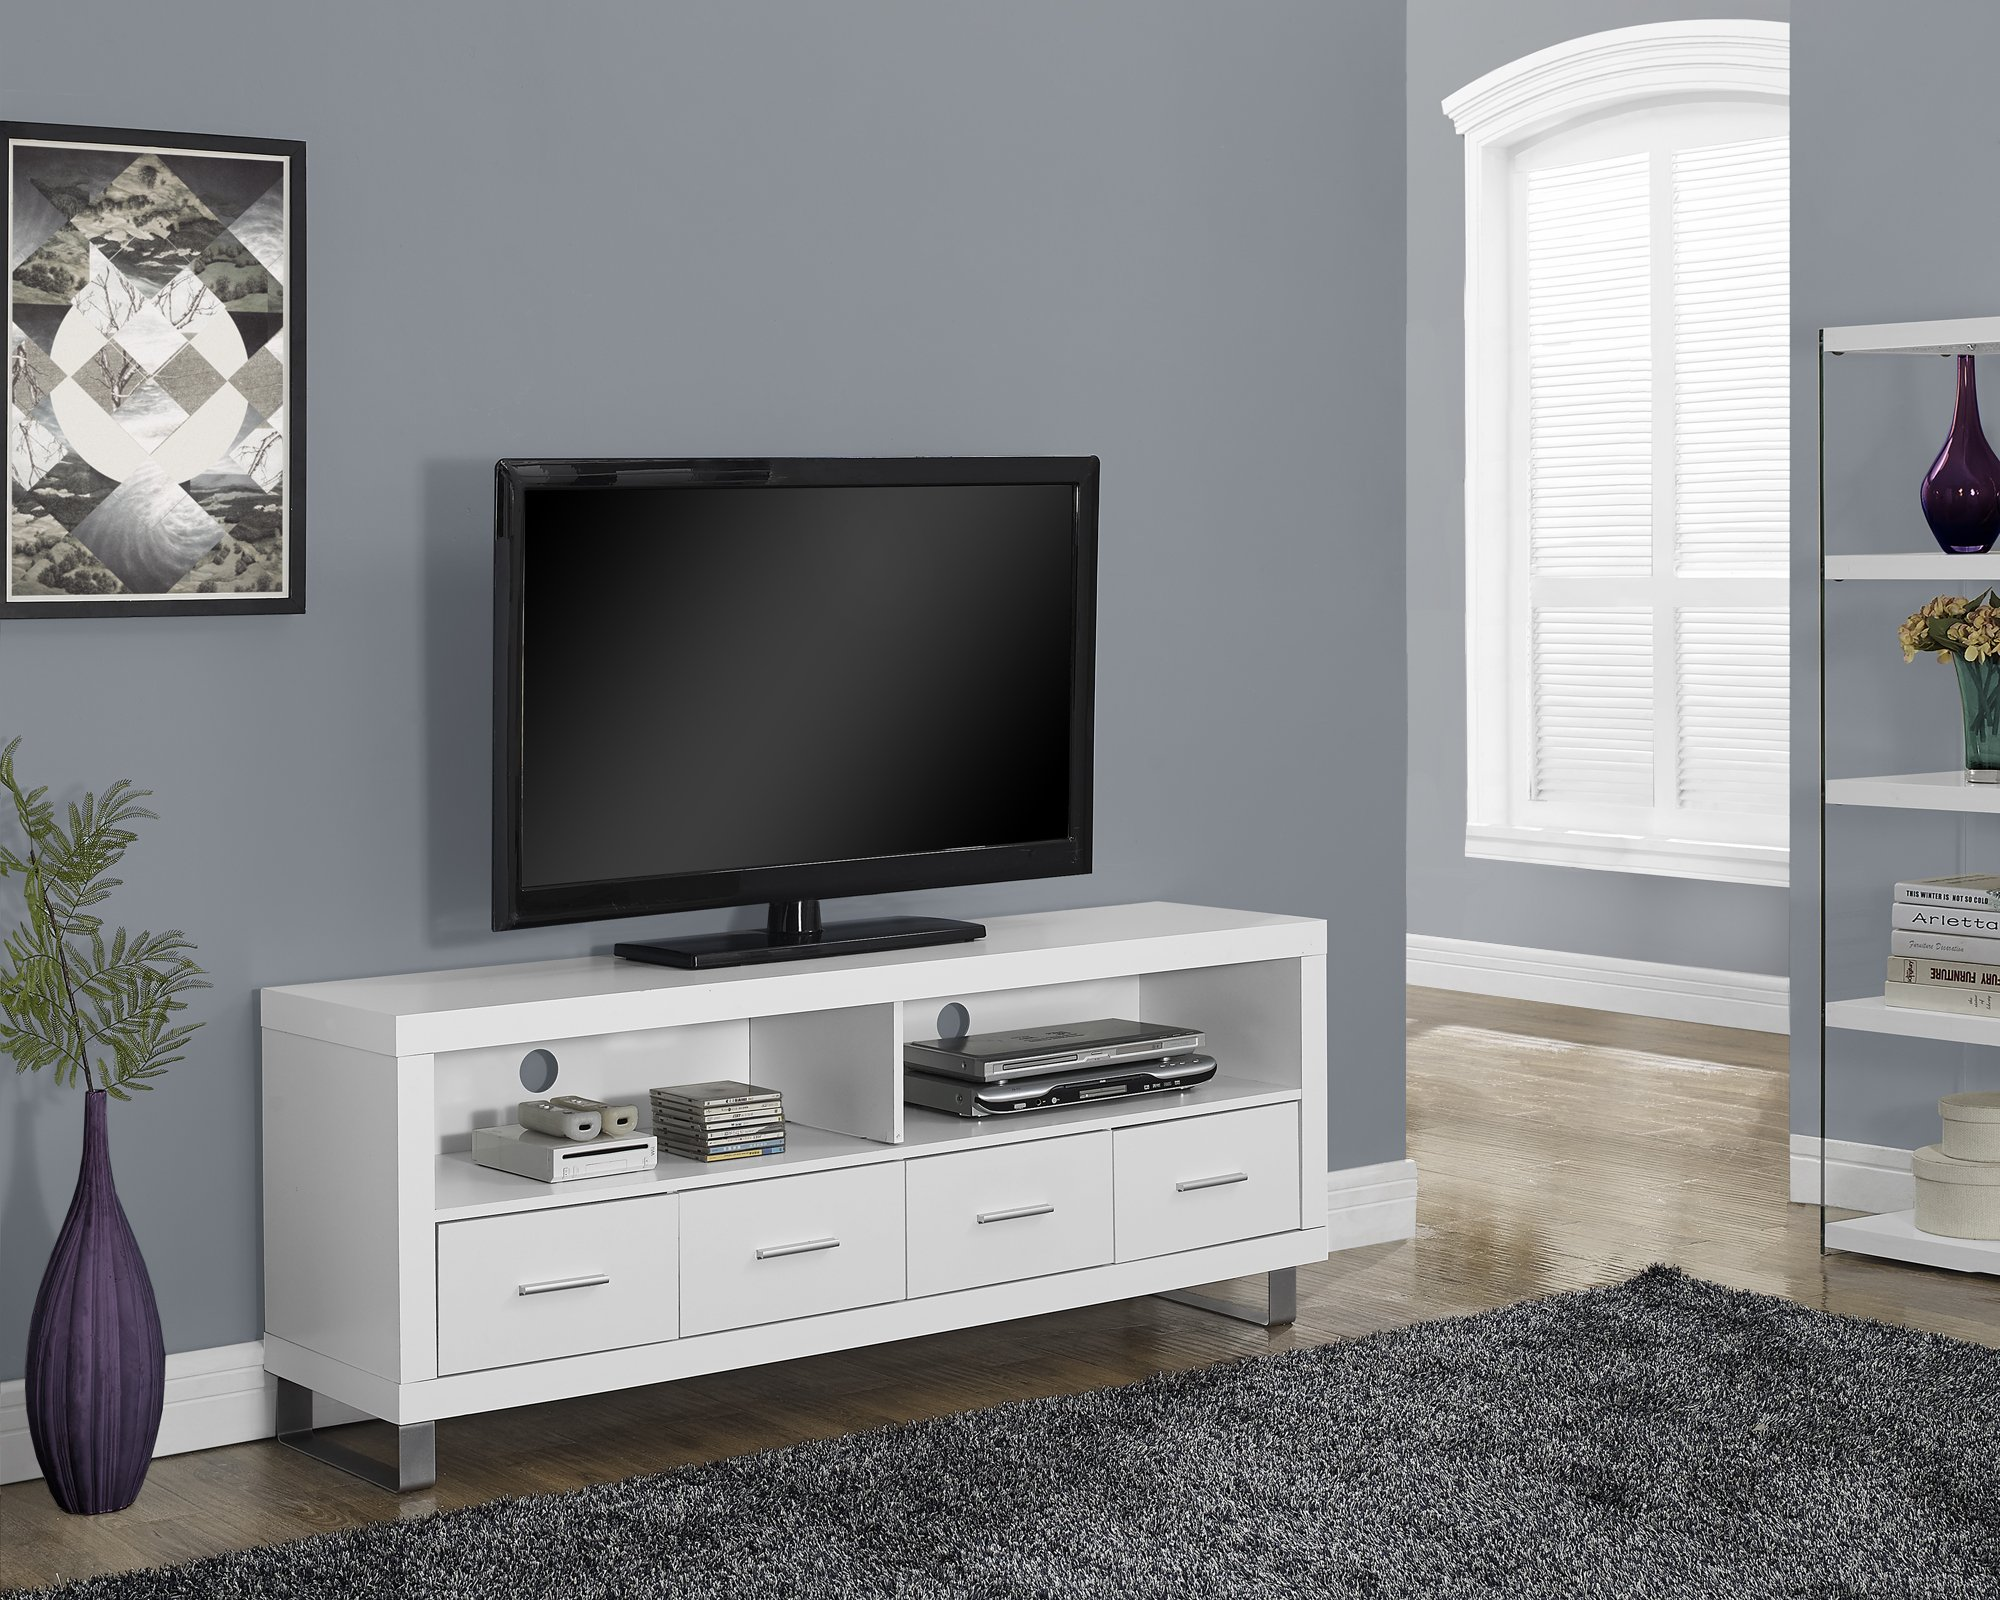 Monarch Specialties I 2518, TV Console with 4 Drawers, White, 60''L